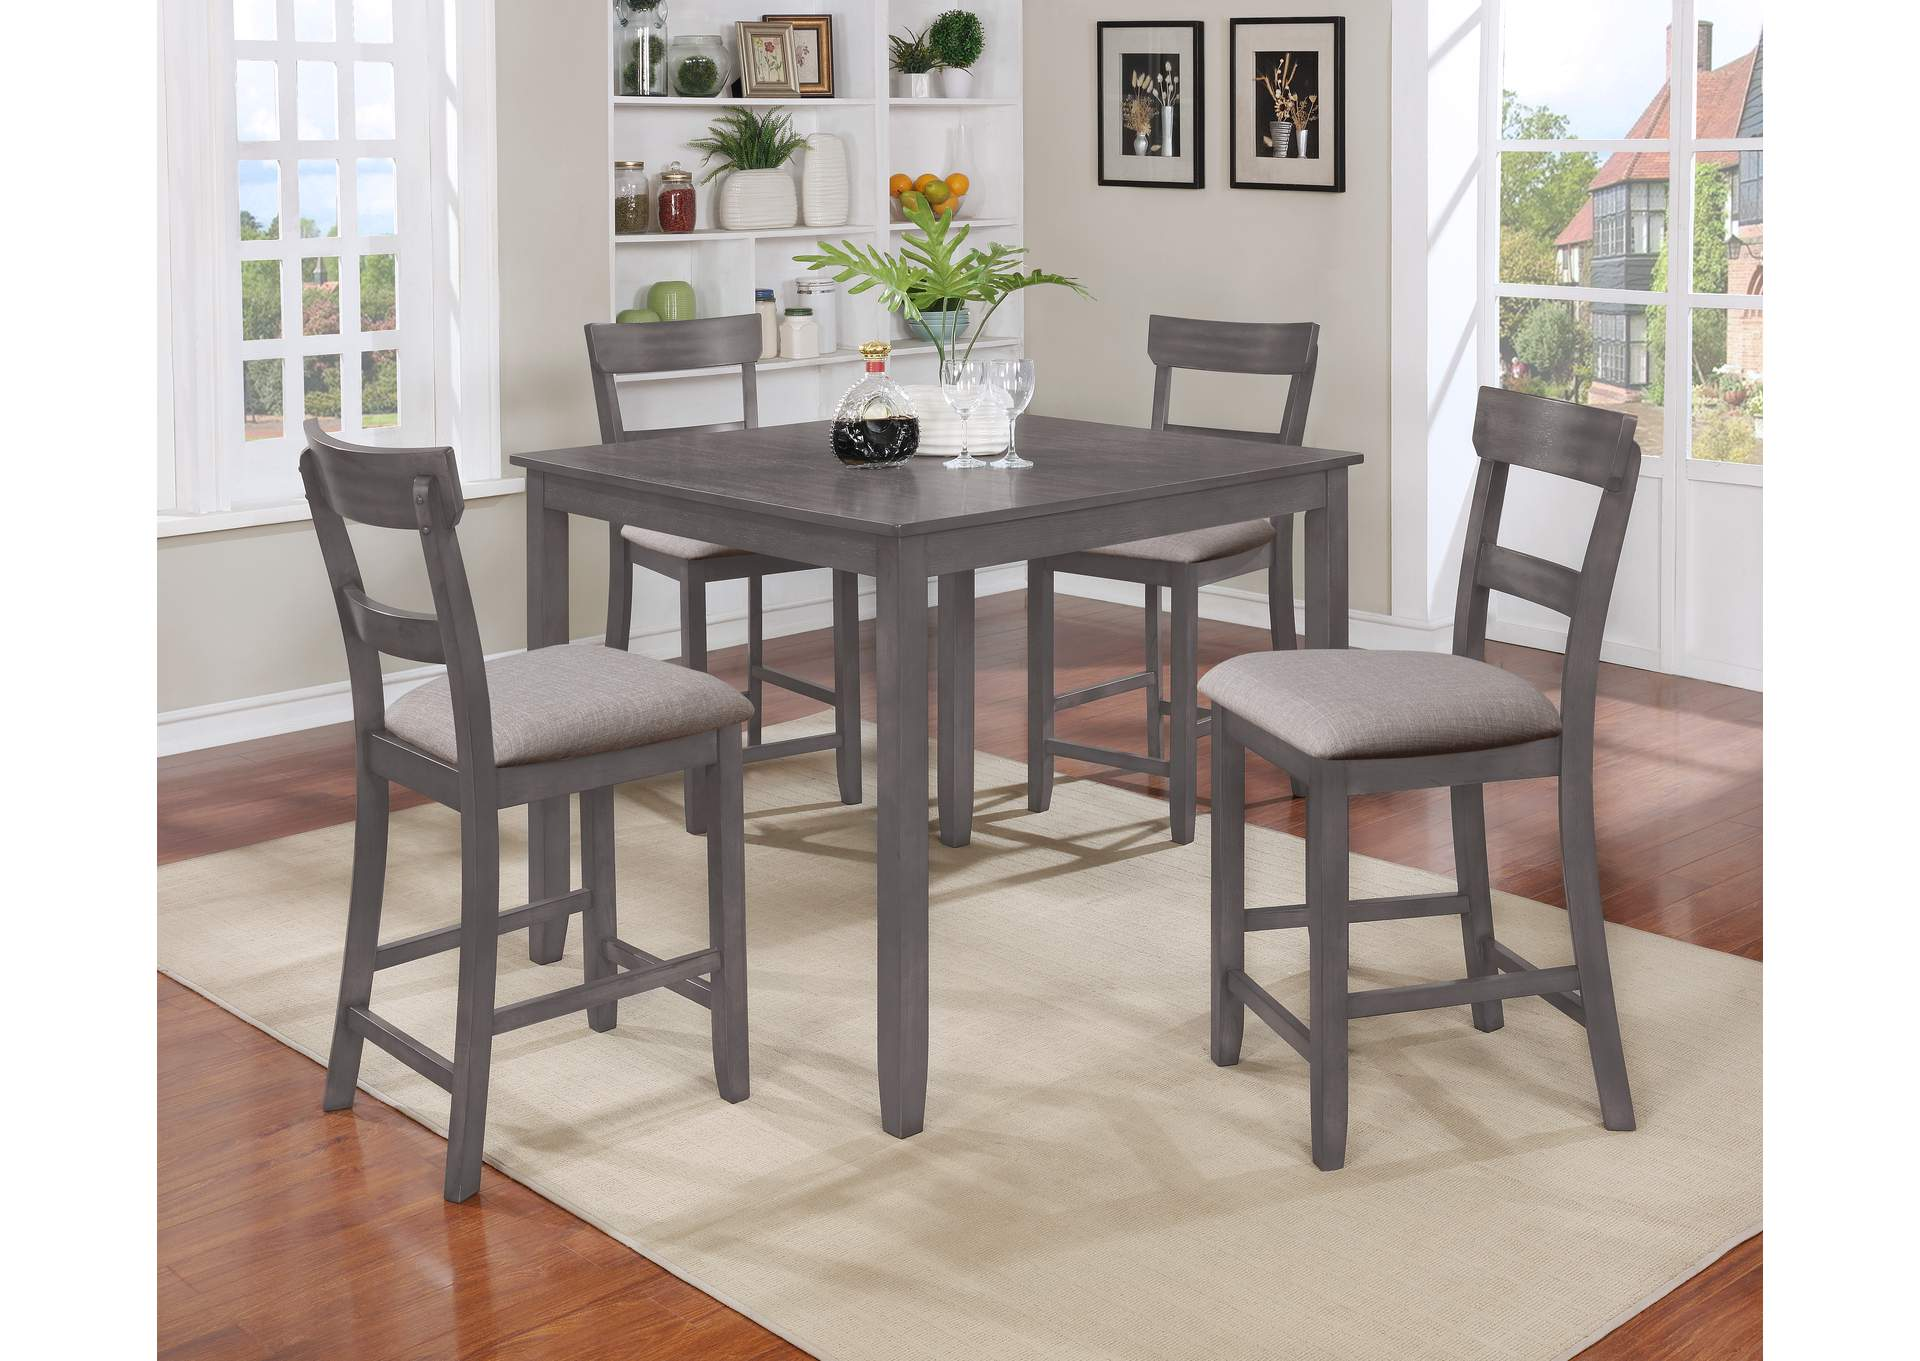 All Brands Furniture   Edison, Greenbrook, North Brunswick, Perth Amboy,  Linden NJ Henderson Grey 5Pk Counter Height Dinette